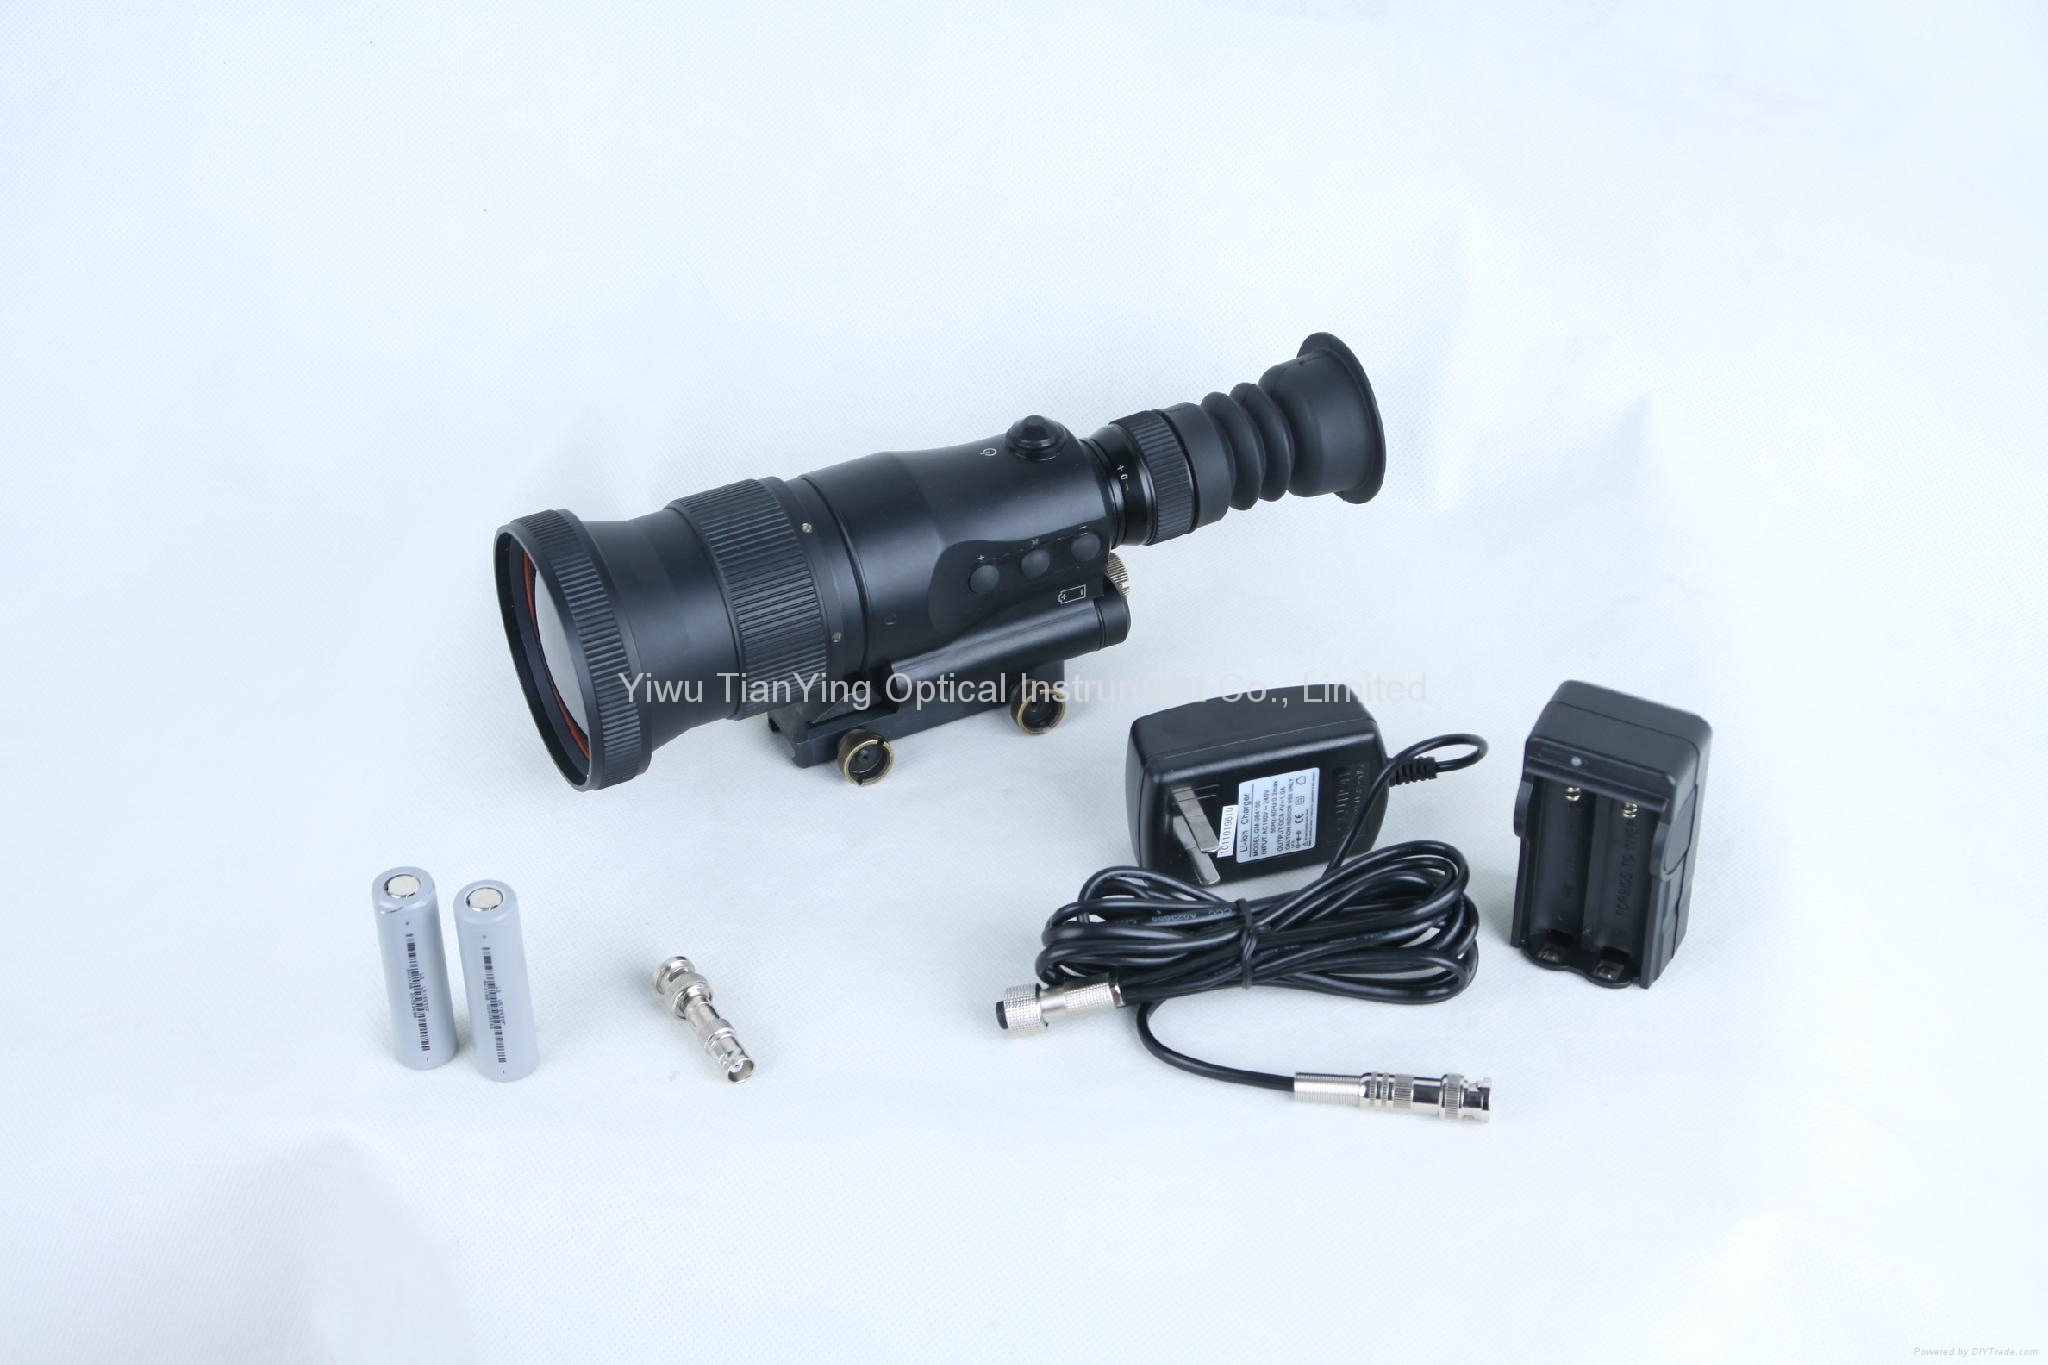 640x512 75mm lens 1000m Sniper Thermal Weapon Sight -5